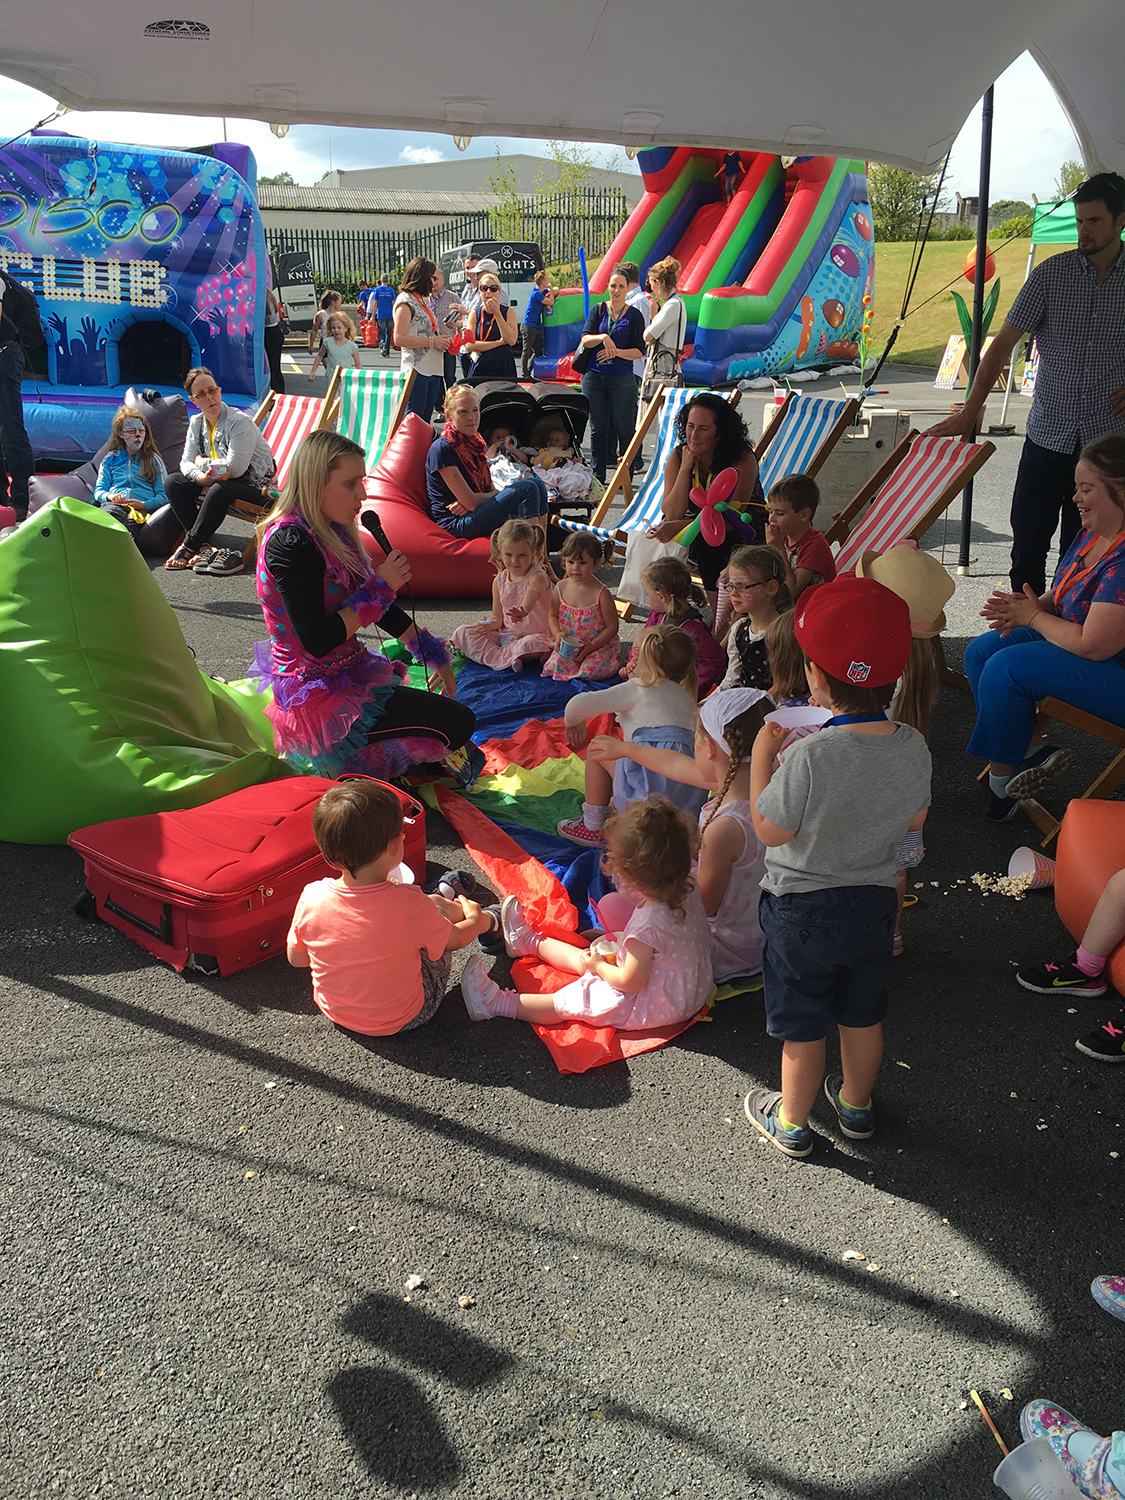 Bristol-Myers Squibb Family Day